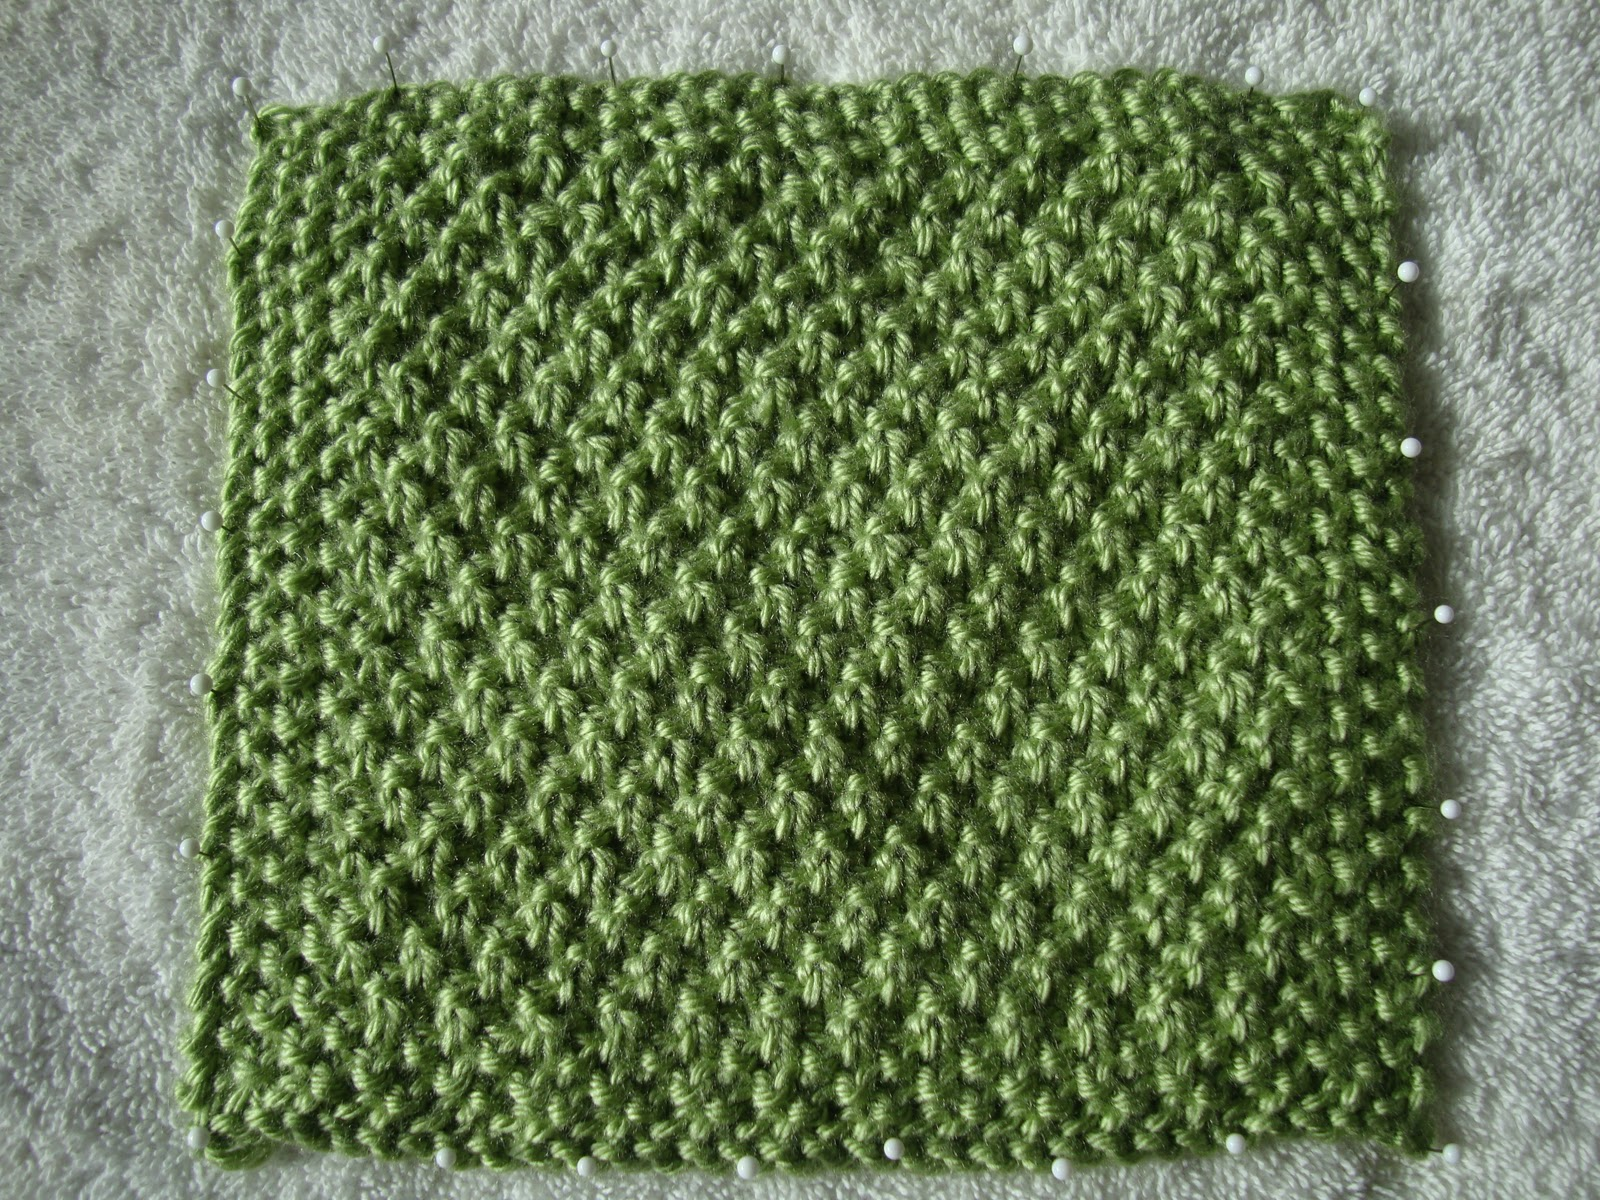 Knitting Double Moss Stitch Instructions : A Year of Swatches: March Swatches